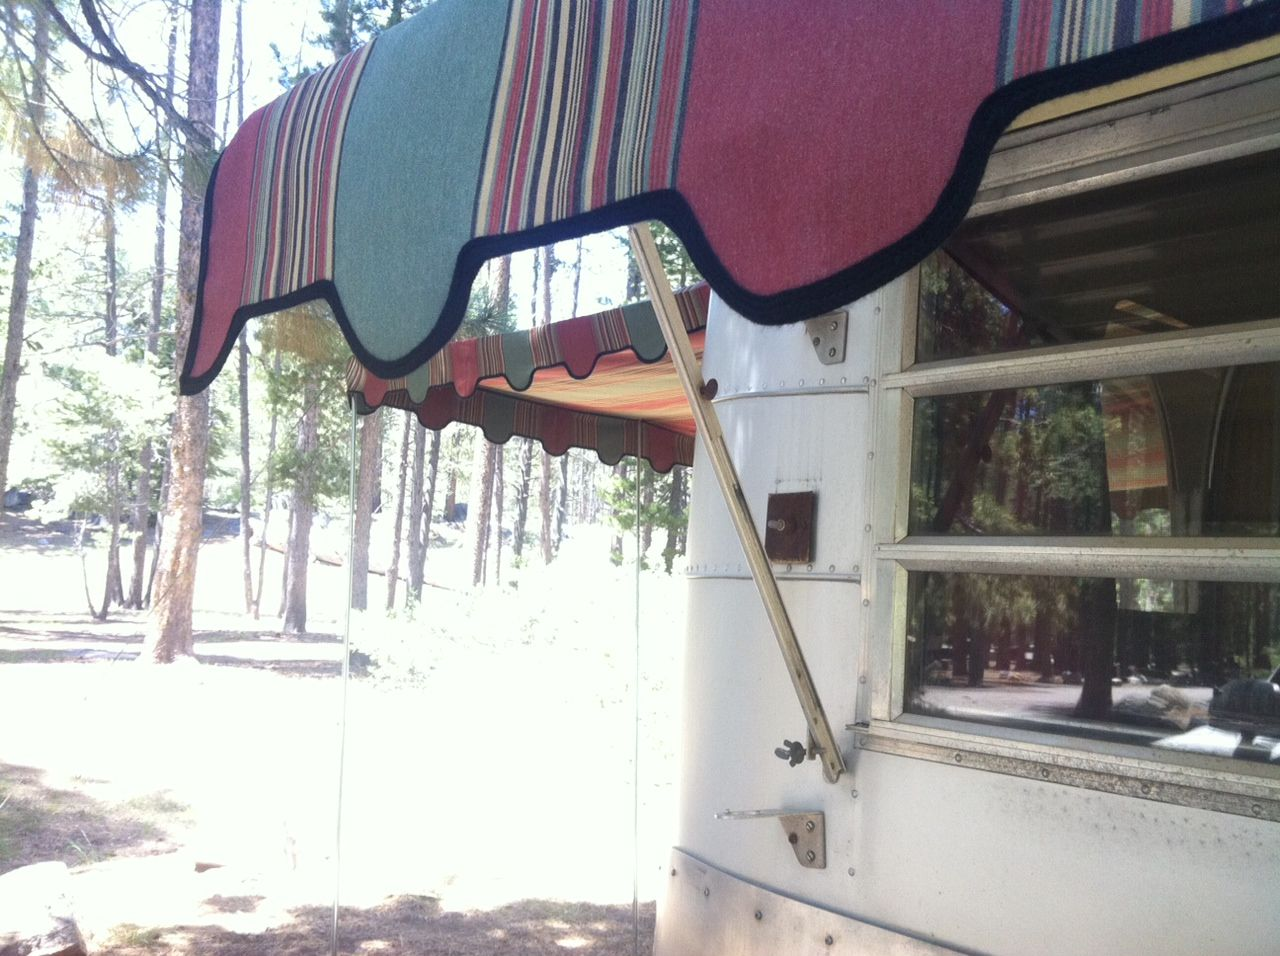 1965 Avion Trailer And My Homemade Awnings Vintage Camper Retro Trailers Trailer Awning